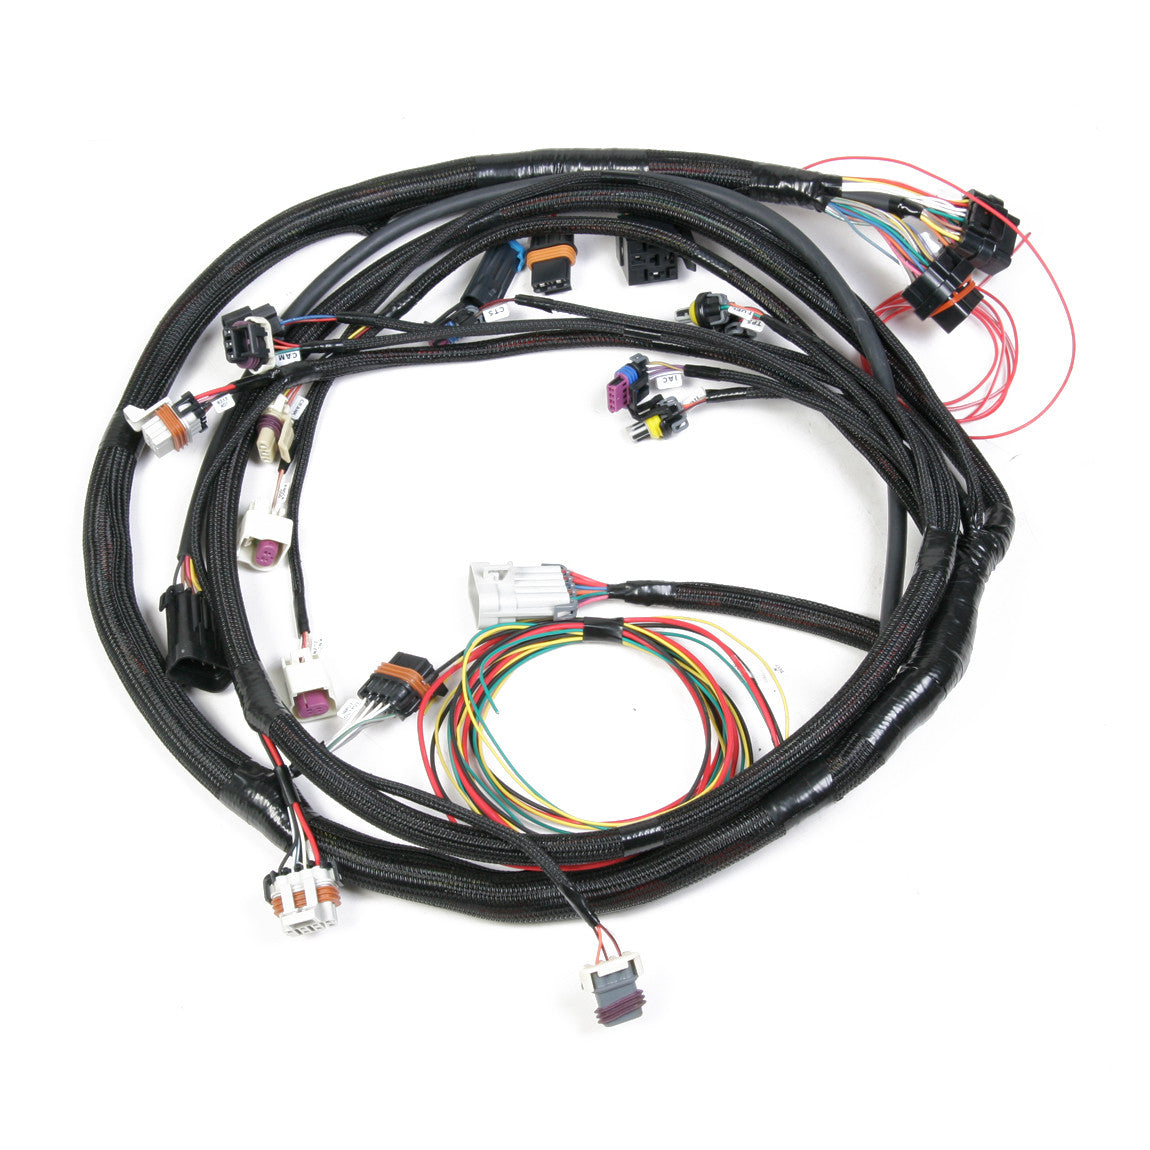 UNIVERSAL MPFI MAIN HARNESS